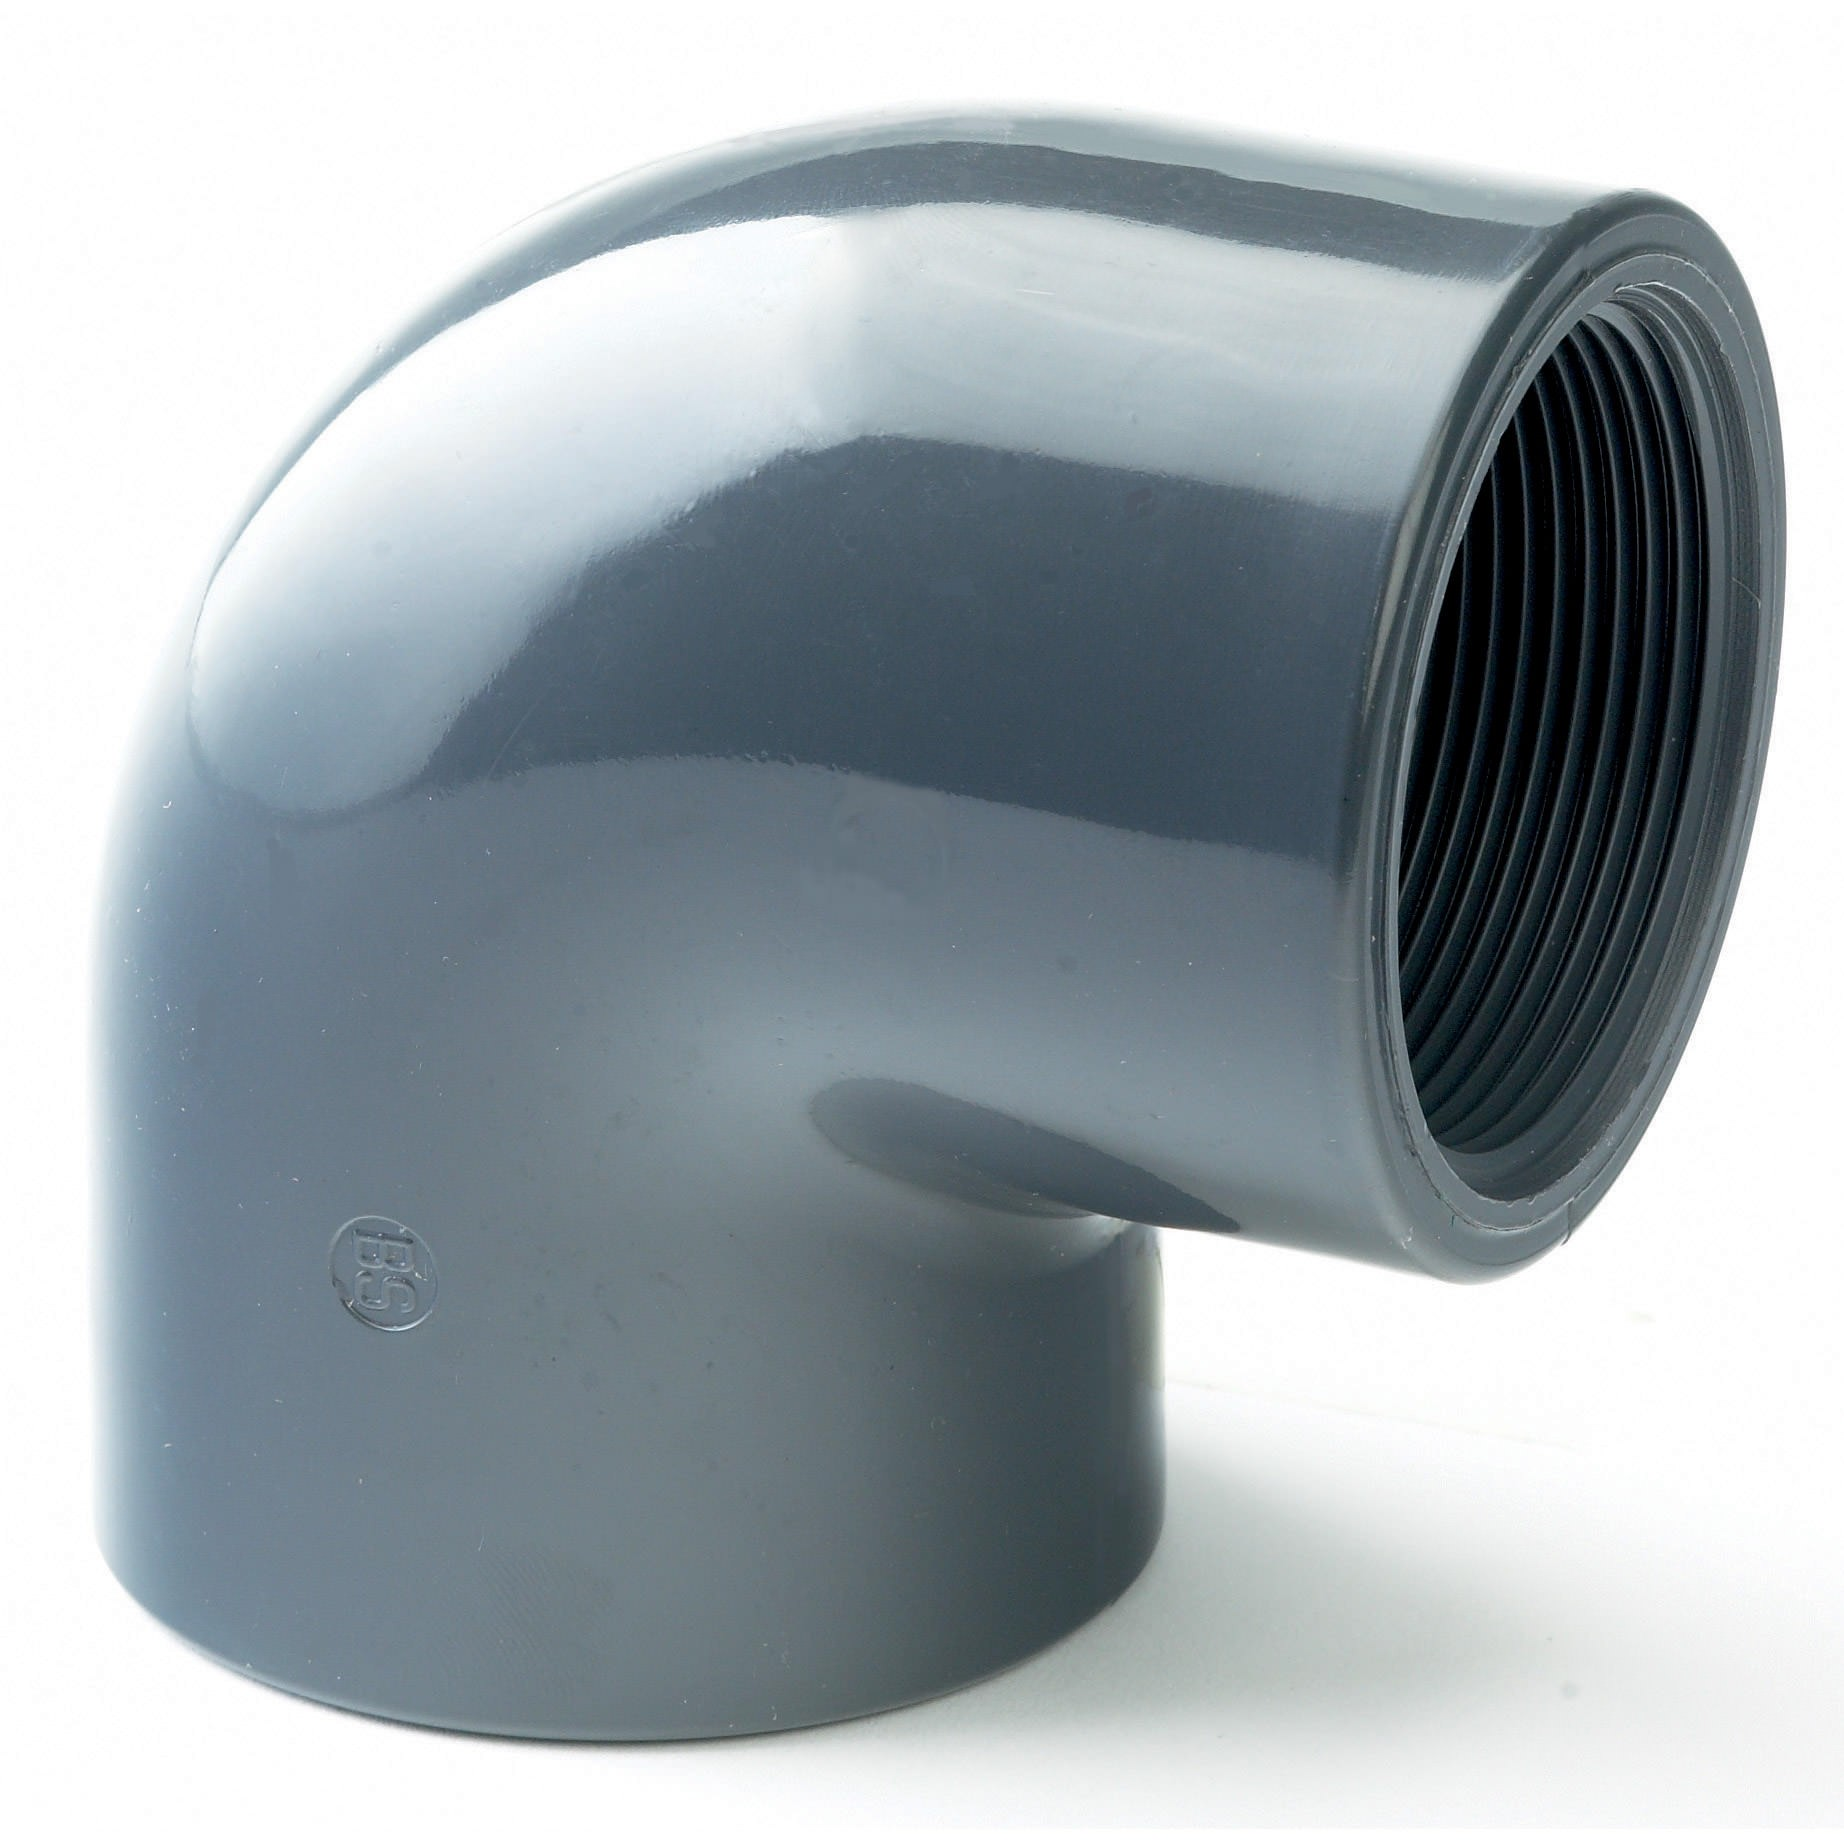 PVC-U Class E Plain Threaded Elbow 90º 16mm